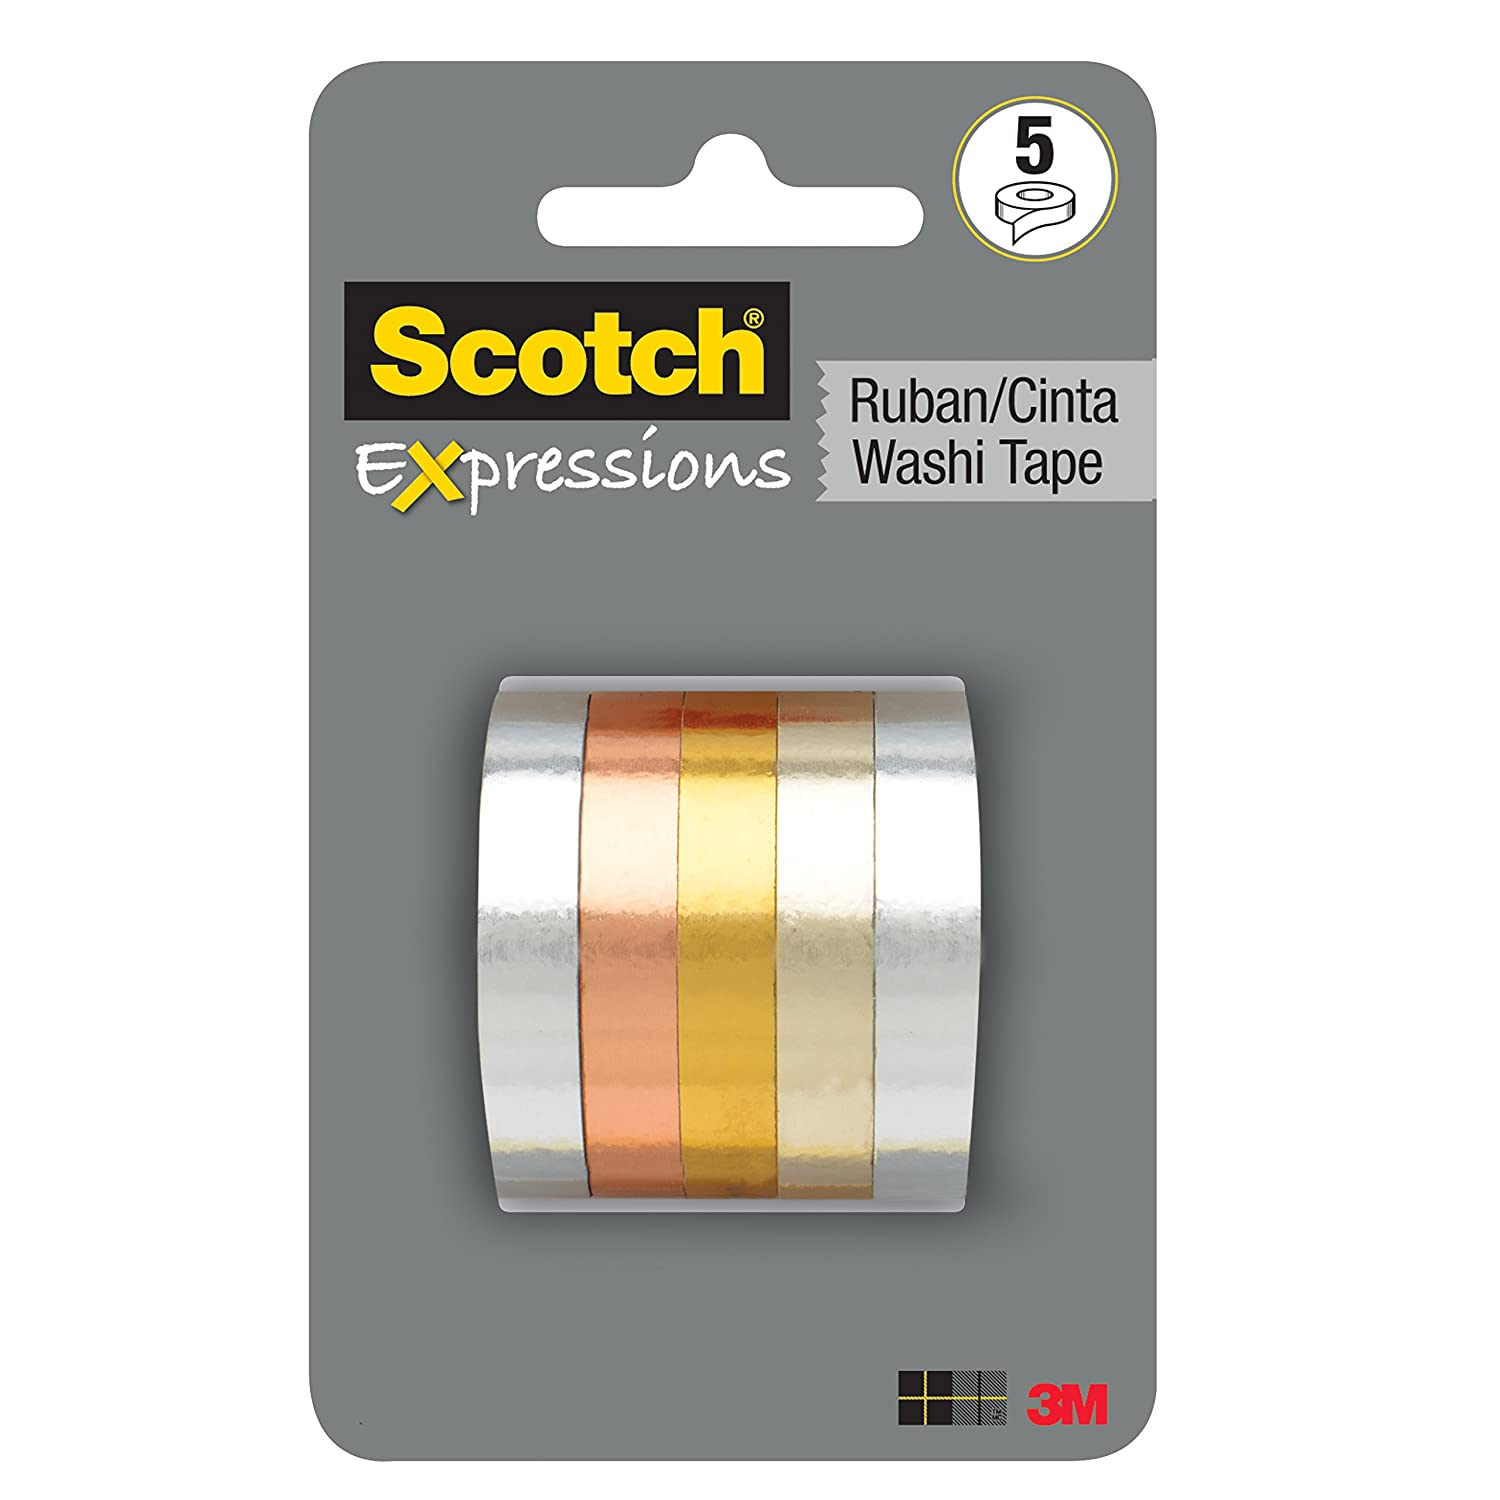 Scotch Expressions Washi Tape Multi Pack, 5 rolls/pk, Thin Foil Collection (C1017-5-P1)